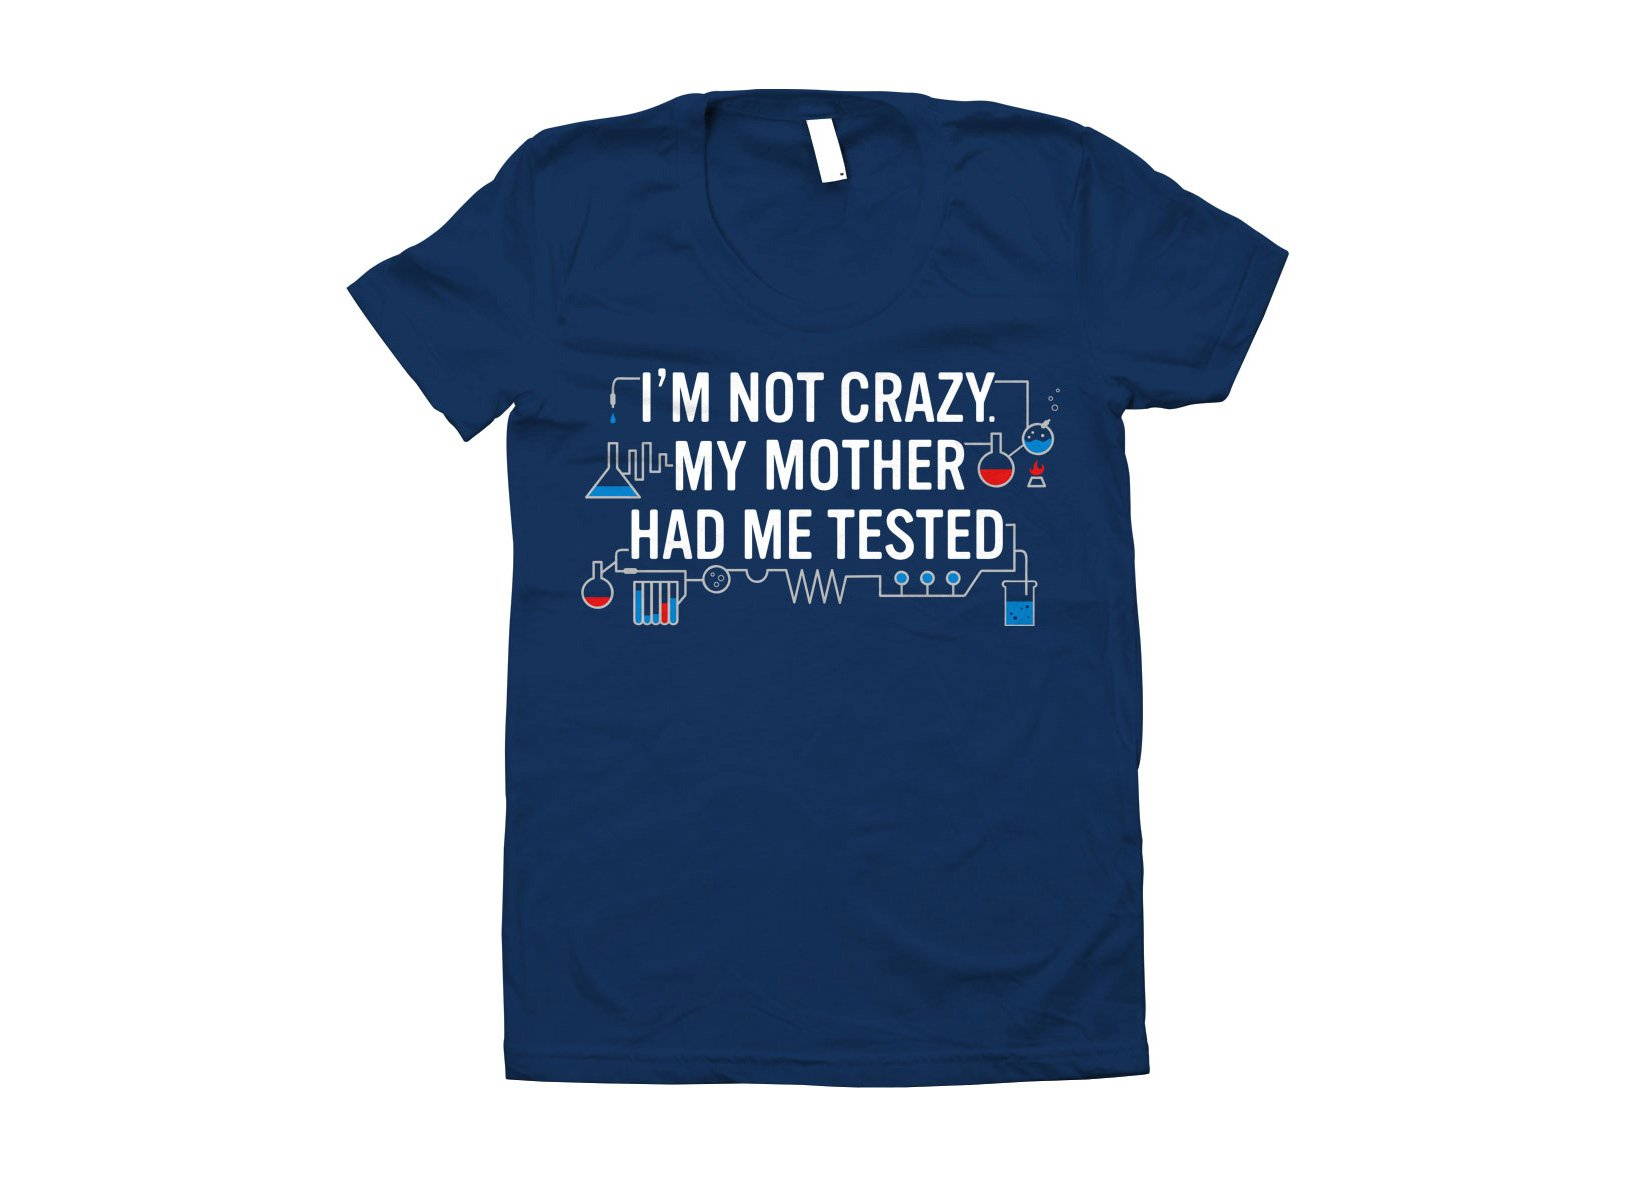 I'm Not Crazy. My Mother Had Me Tested. on Juniors T-Shirt